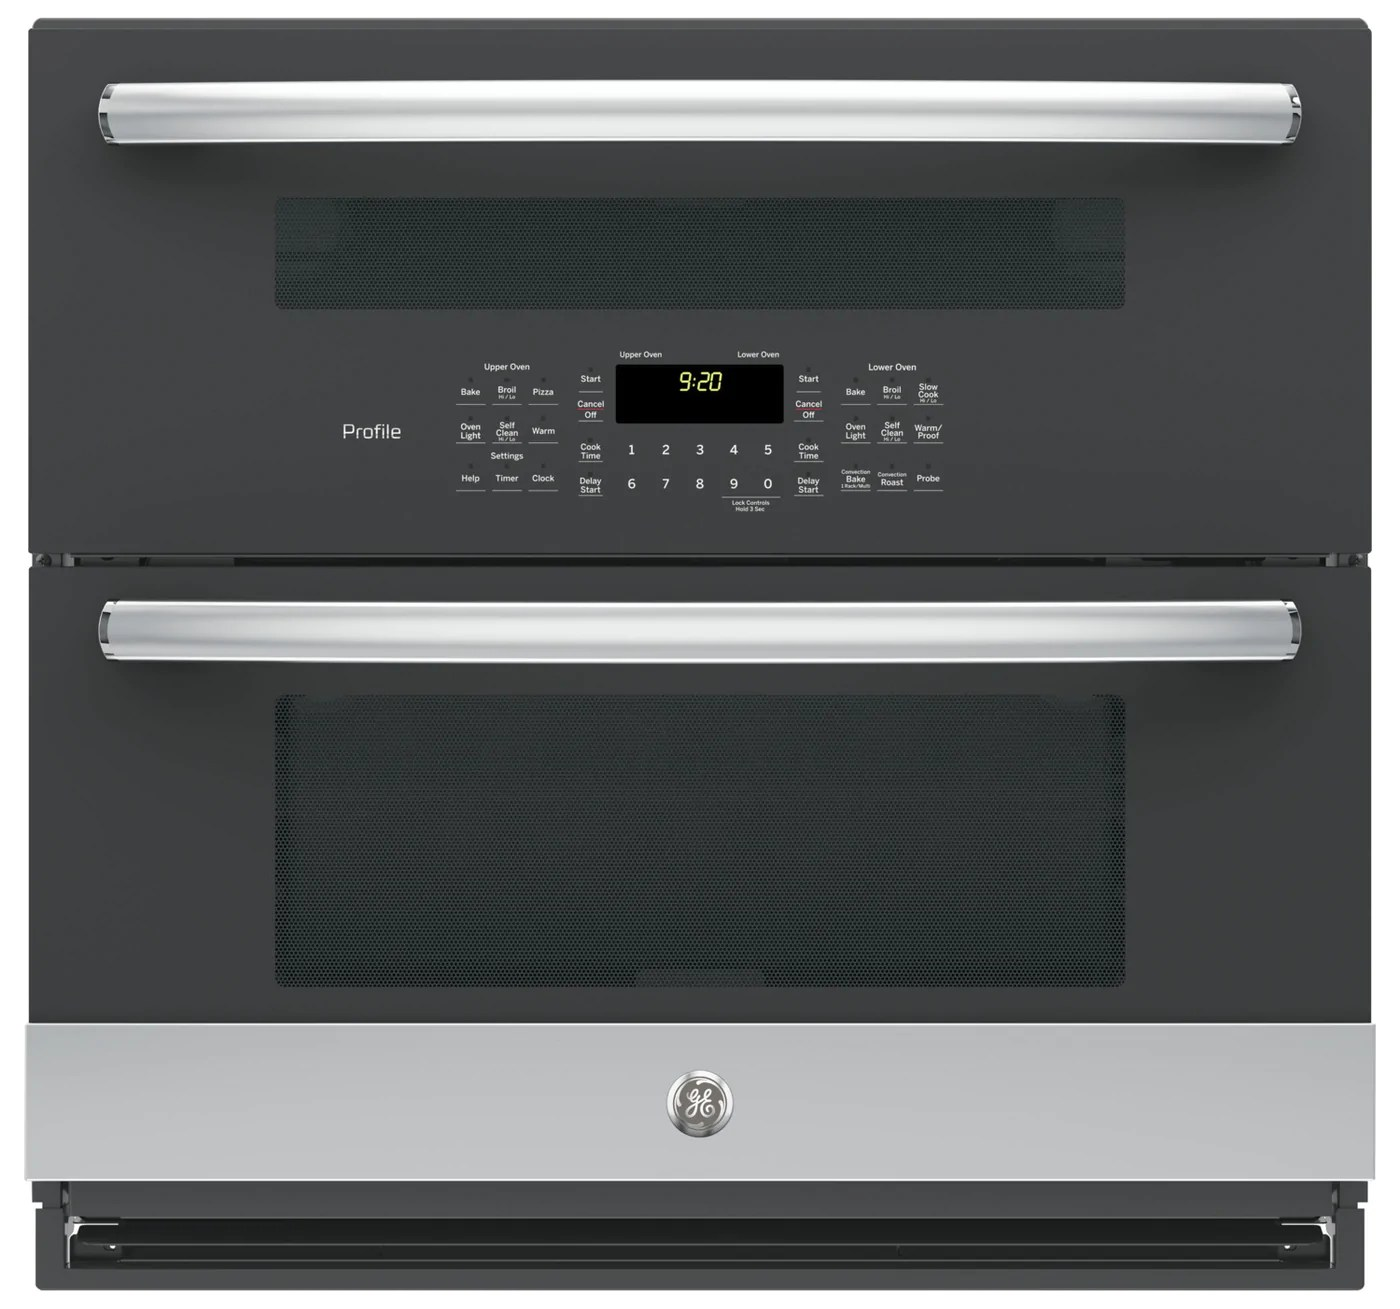 ge profile series 5 0 cu ft built in twin flex convection wall oven pt9200slss